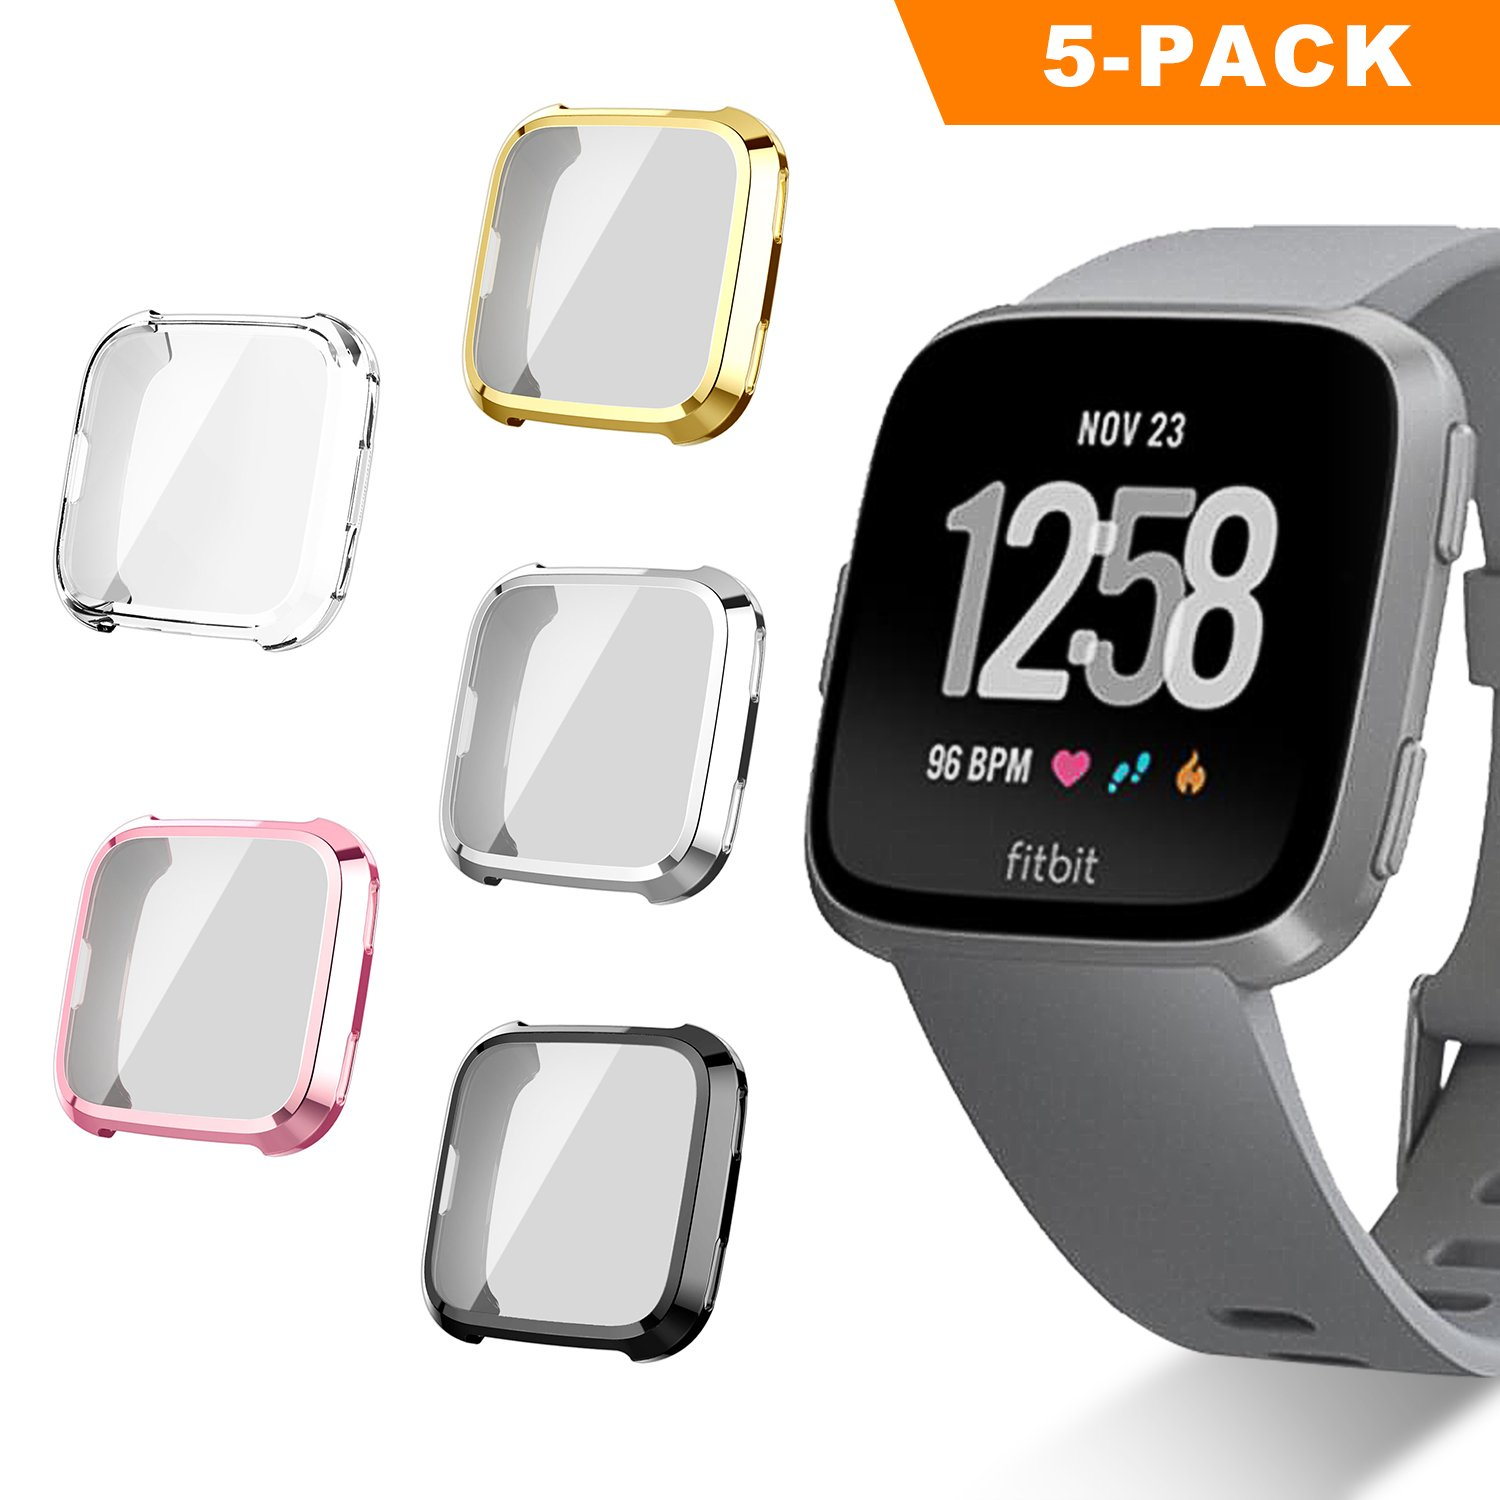 Fitbit Versa Screen Protector Case, UBOLE Scratch-resistant Flexible Lightweight Plated TPU FullBody Protective Case for Fitbit Versa Smart Watch (5PACK)